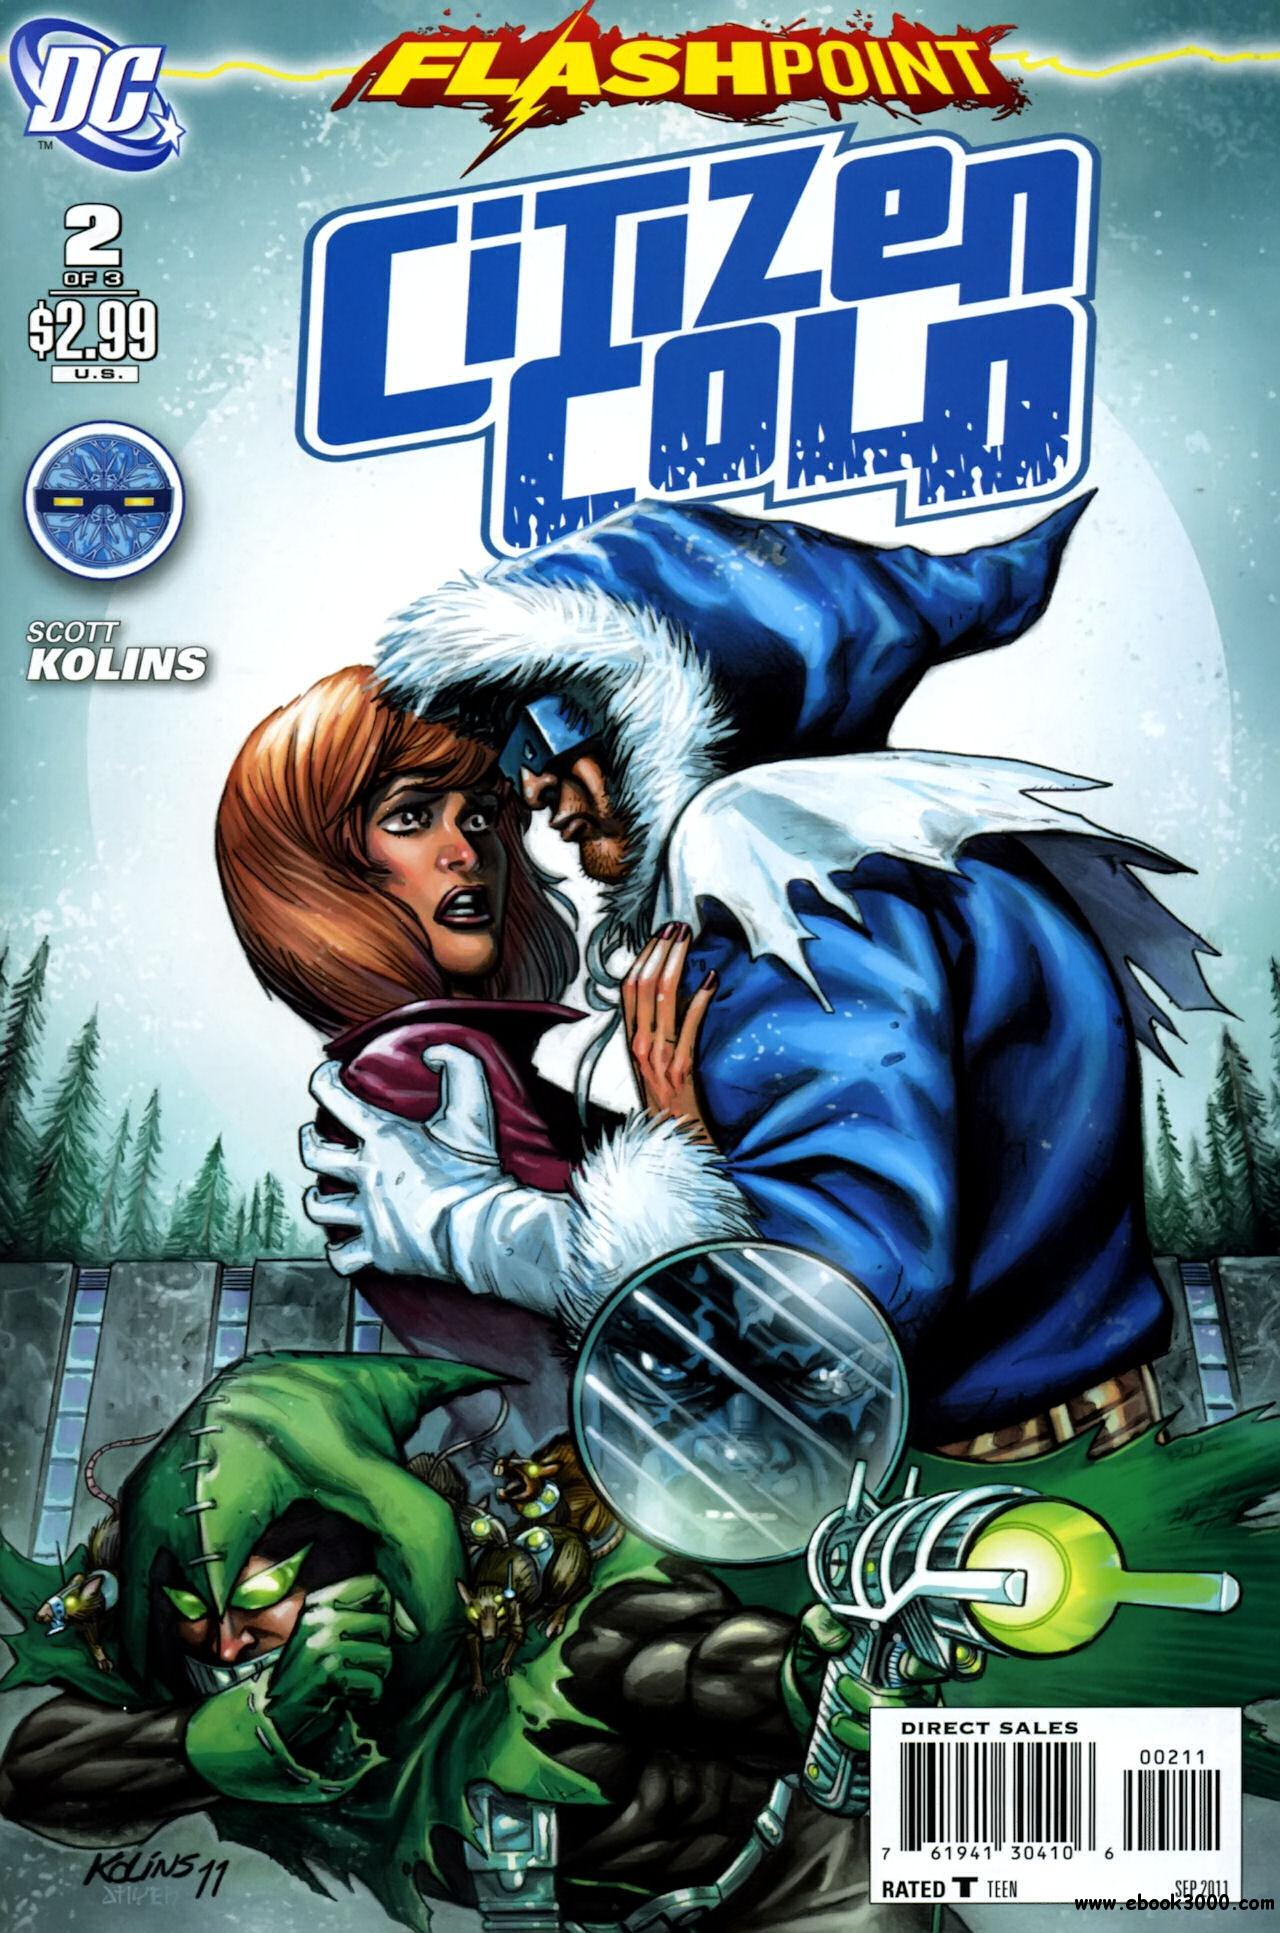 Flashpoint - Citizen Cold #2 (2011) free download